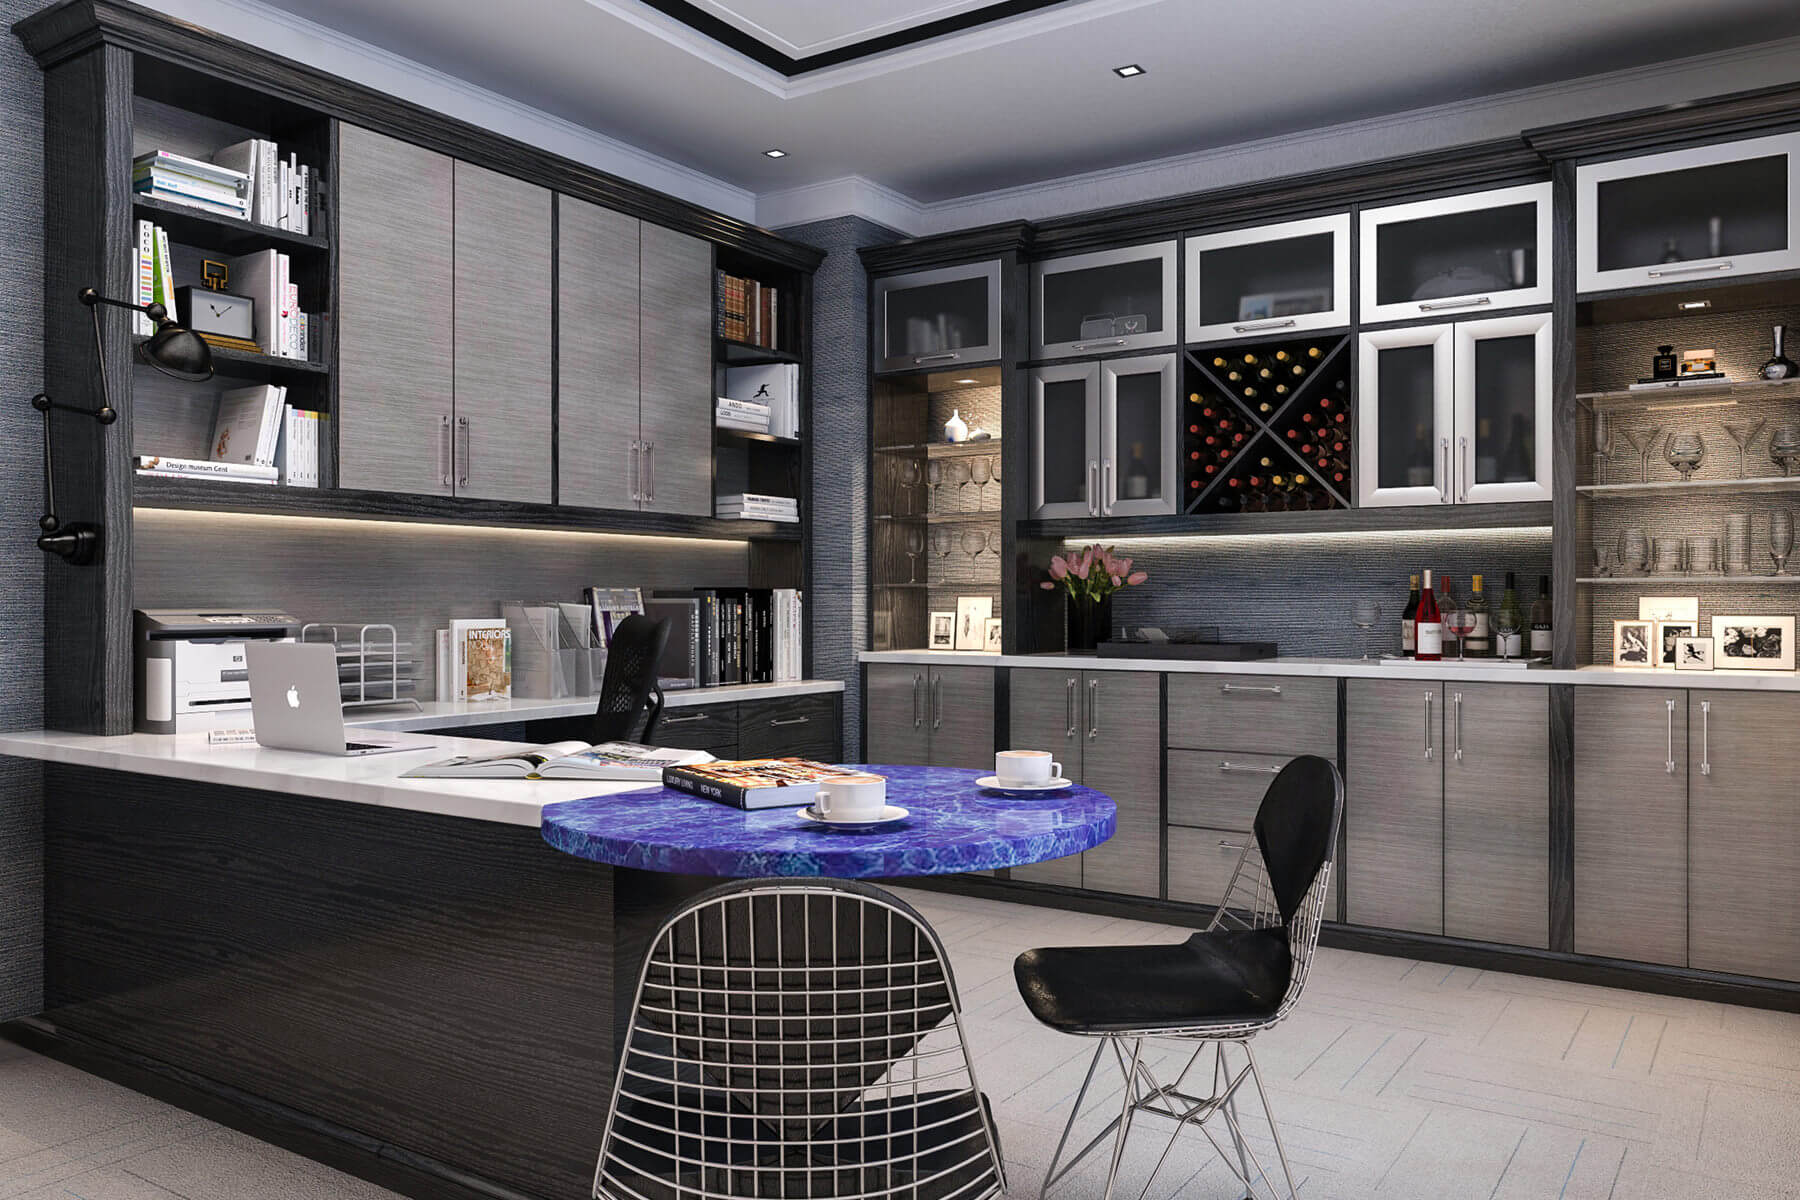 Here's a huge contemporary home office with loads of cabinetry as well as a wet bar.